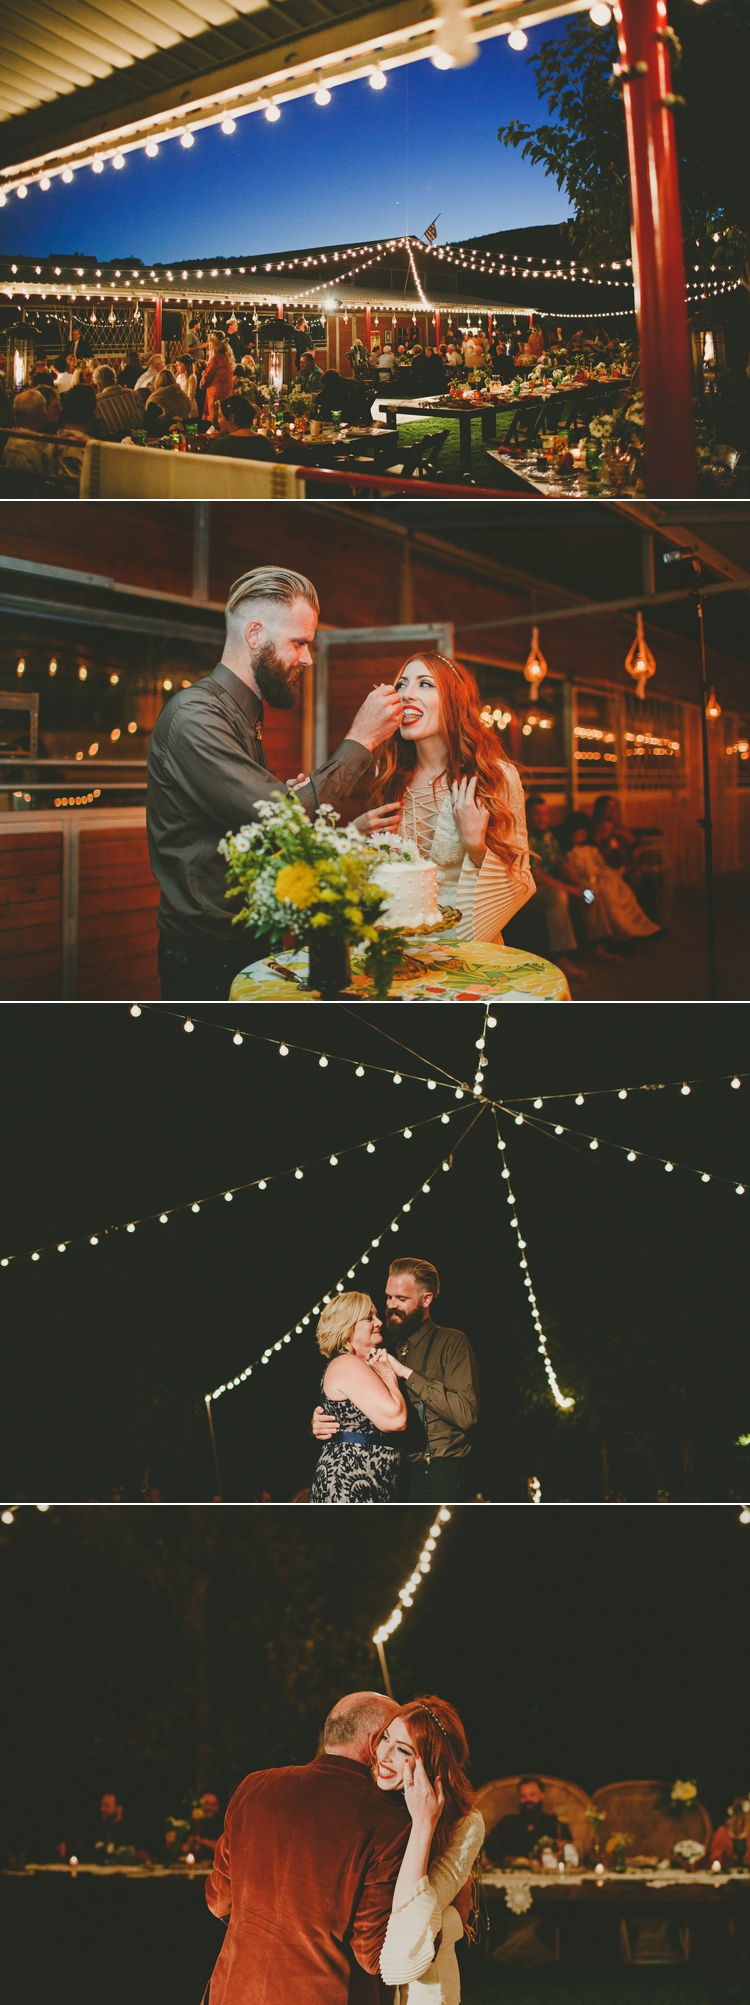 woodstock-inspired-wedding-photos-33